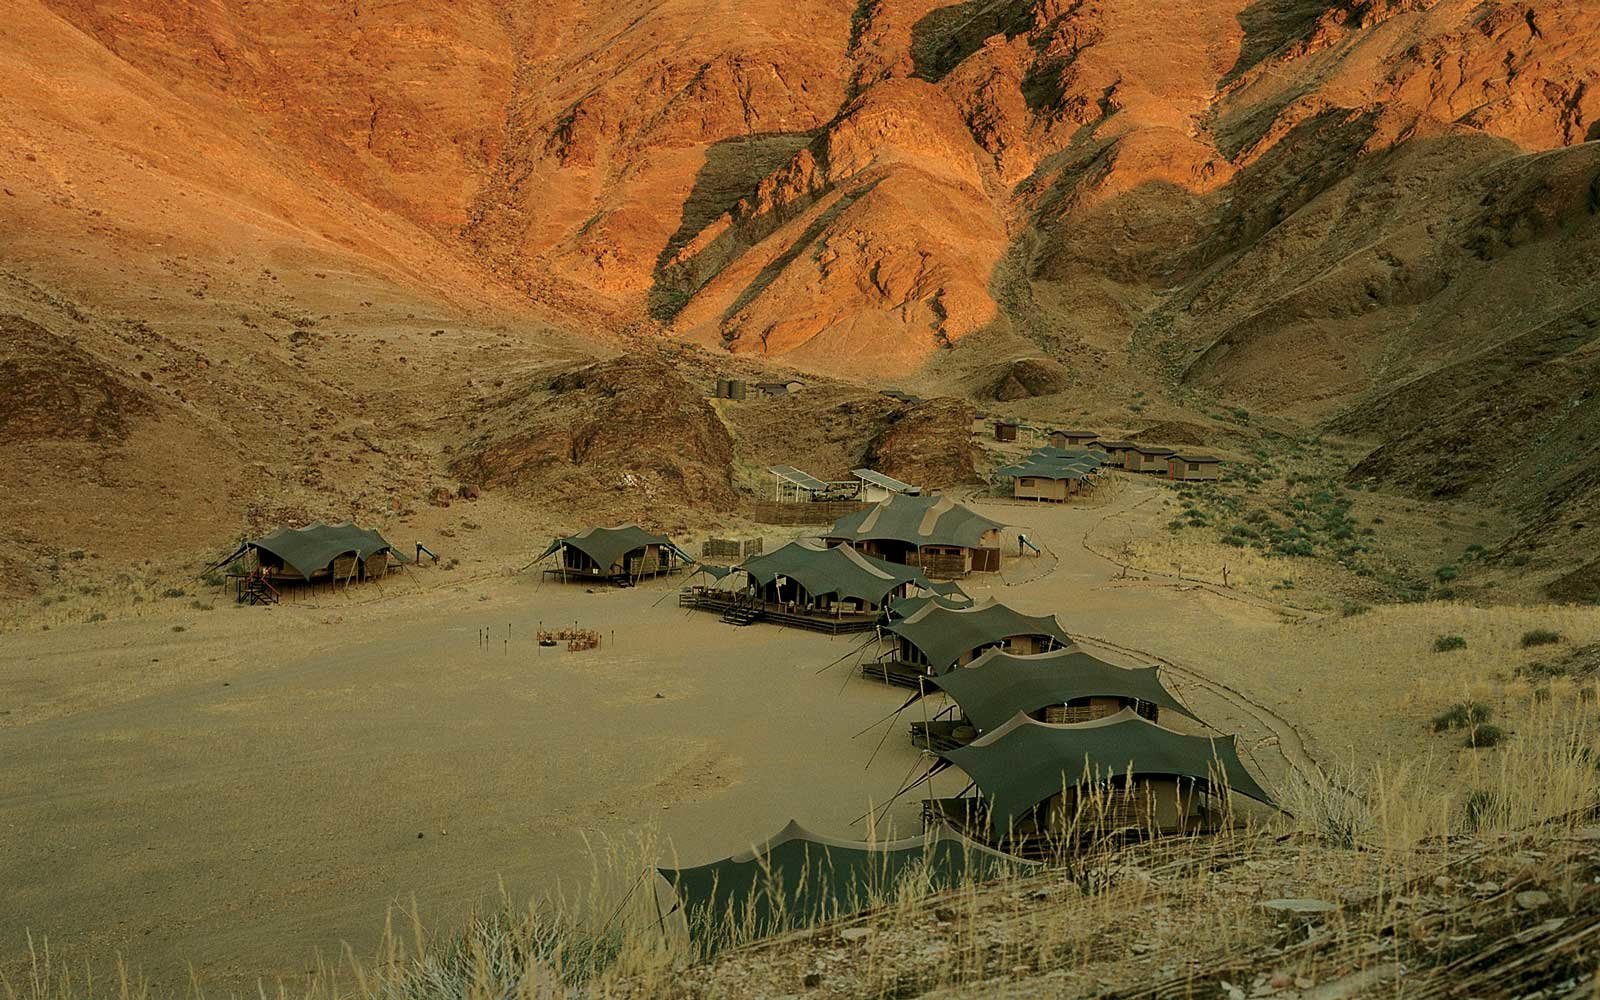 Hoanib Valley Camp, in Namibia